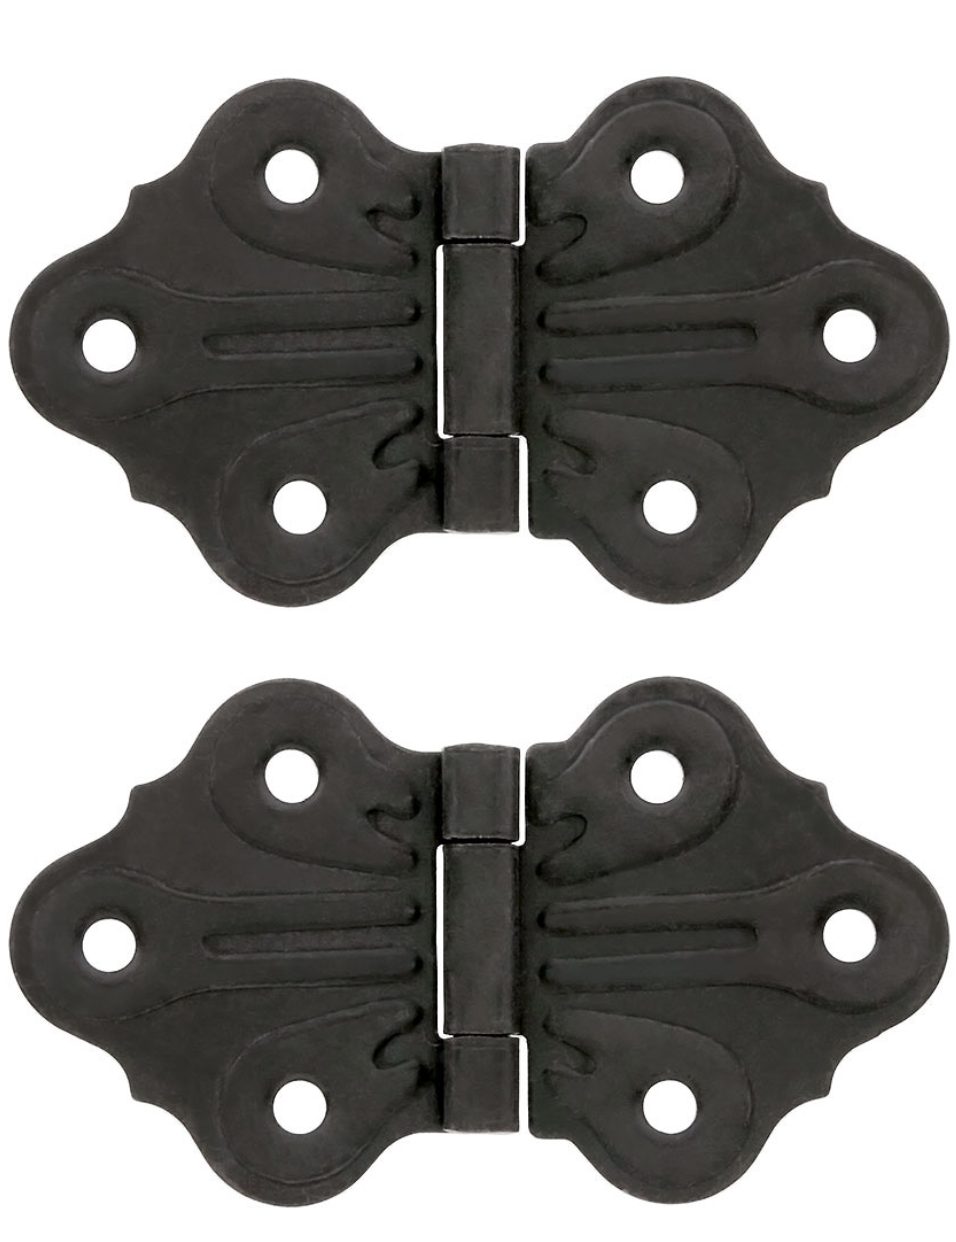 Pair of Butterfly Flush Mount Cabinet Hinges